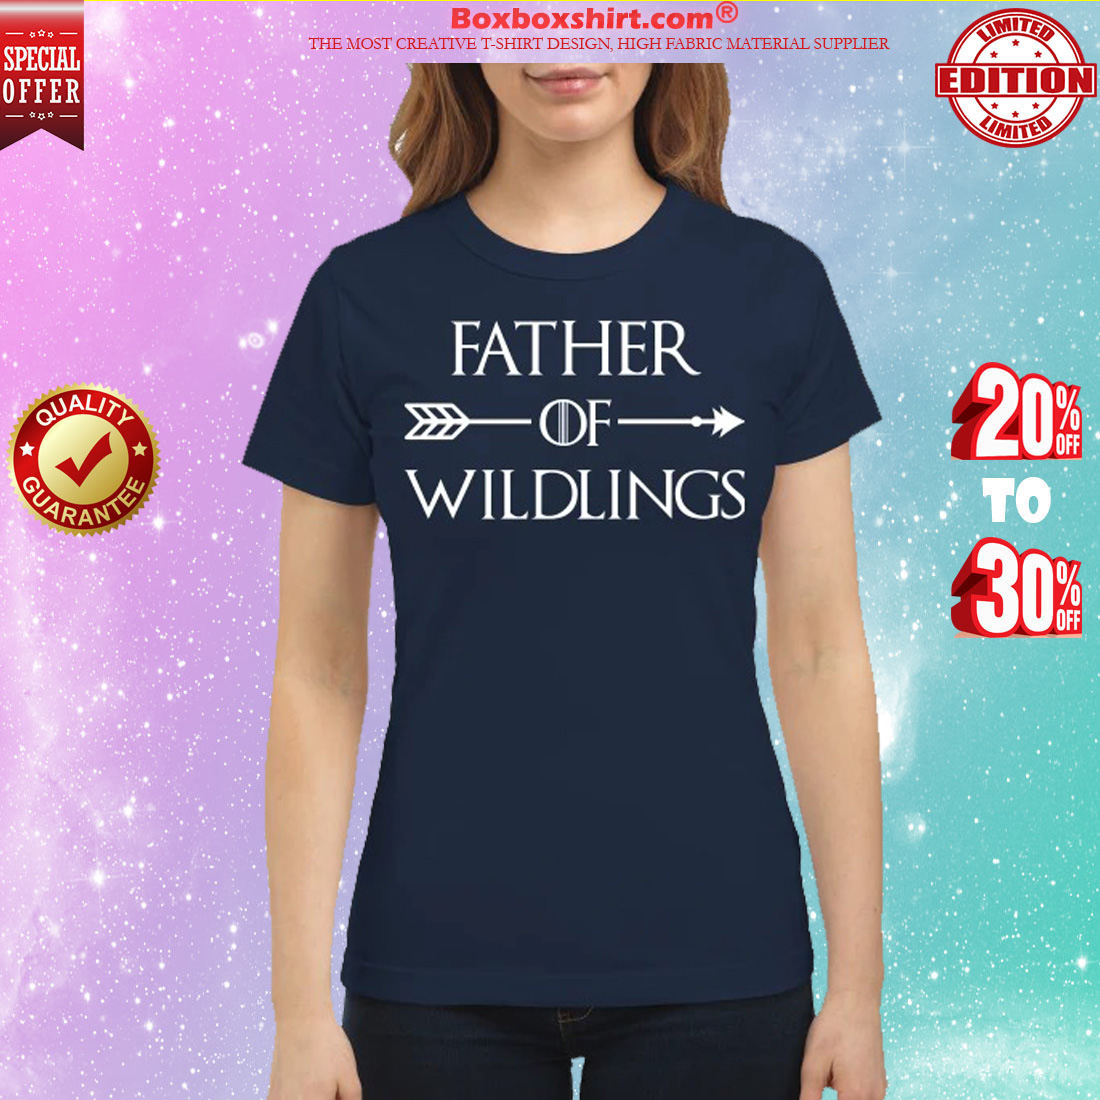 Game of Thrones father of wildings classic shirt